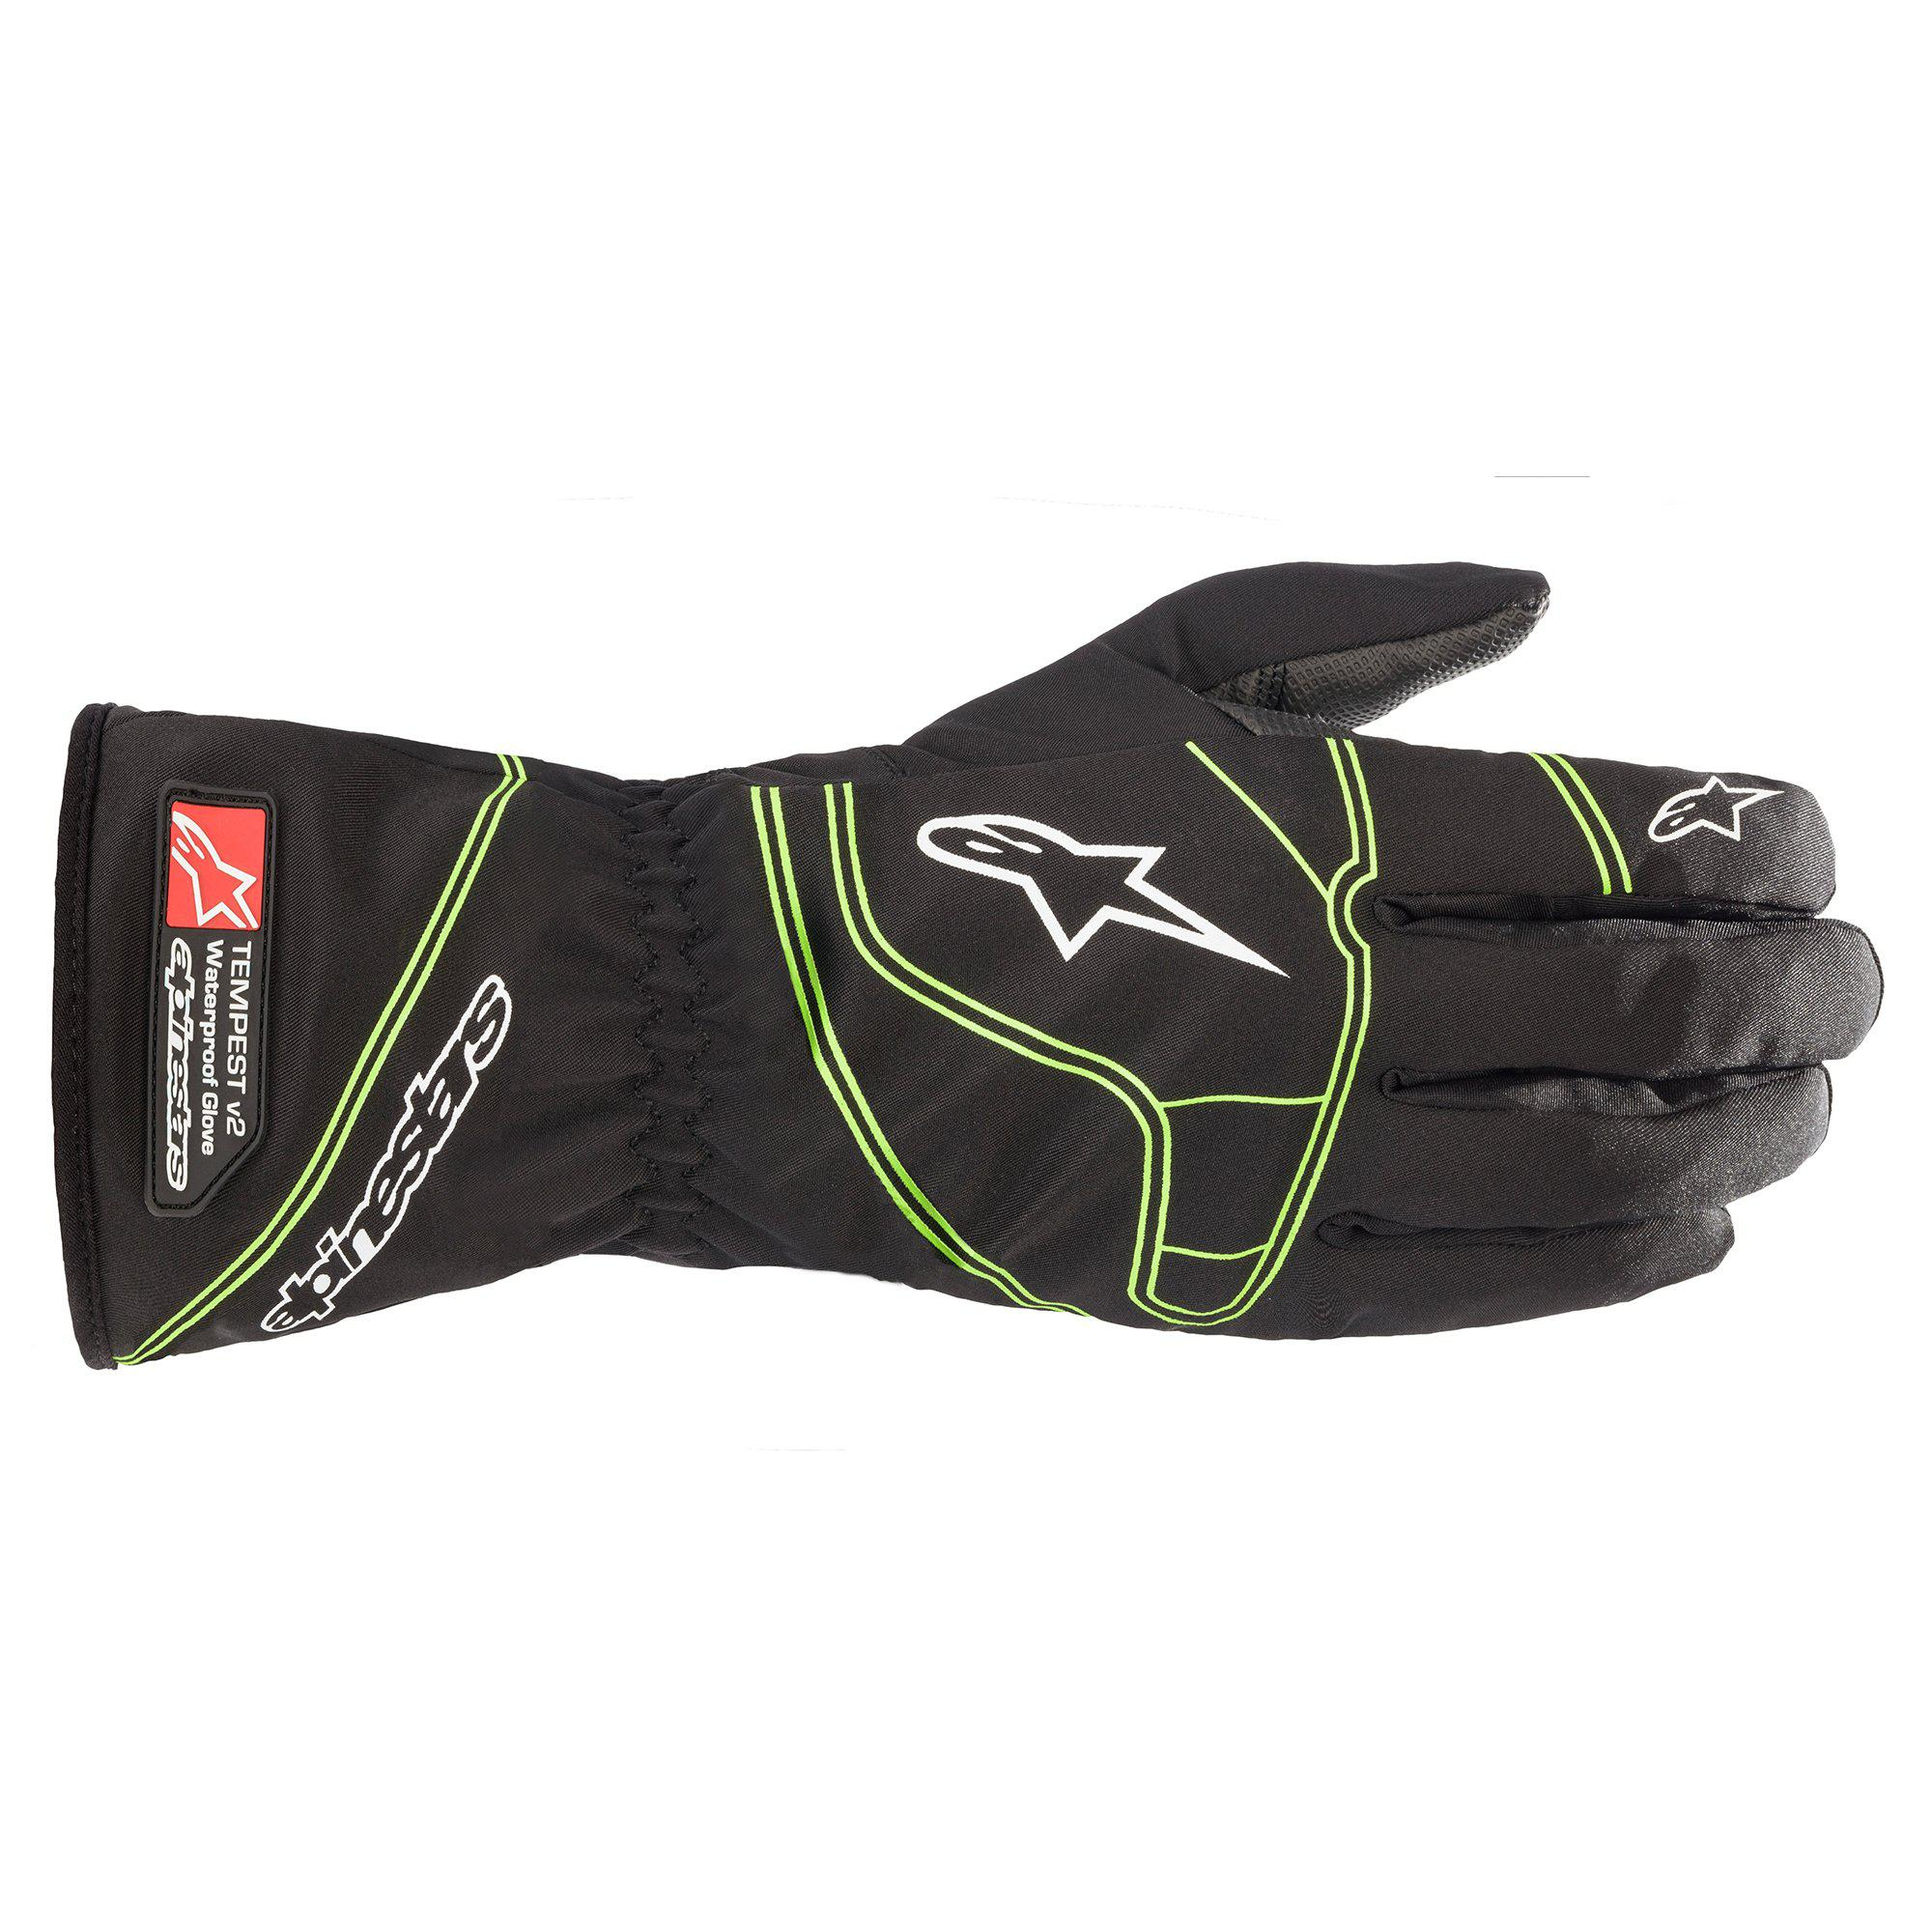 2021 Tempest V2 Youth Waterproof Gloves